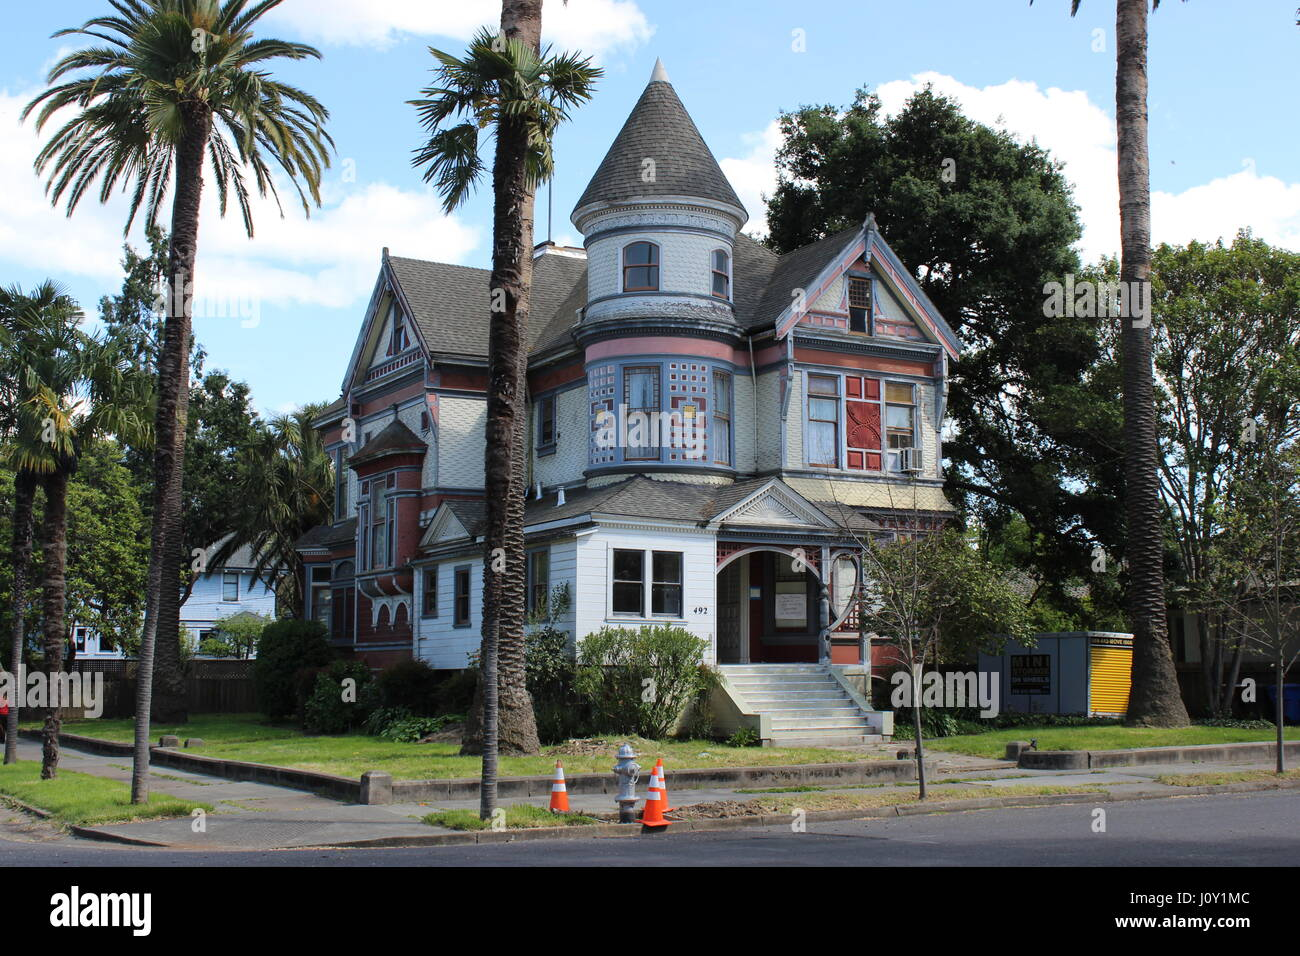 George E. Goodman Jr. House, 1891 Queen Anne Victorian house in Napa, California, designed by J. Marquis - Stock Image